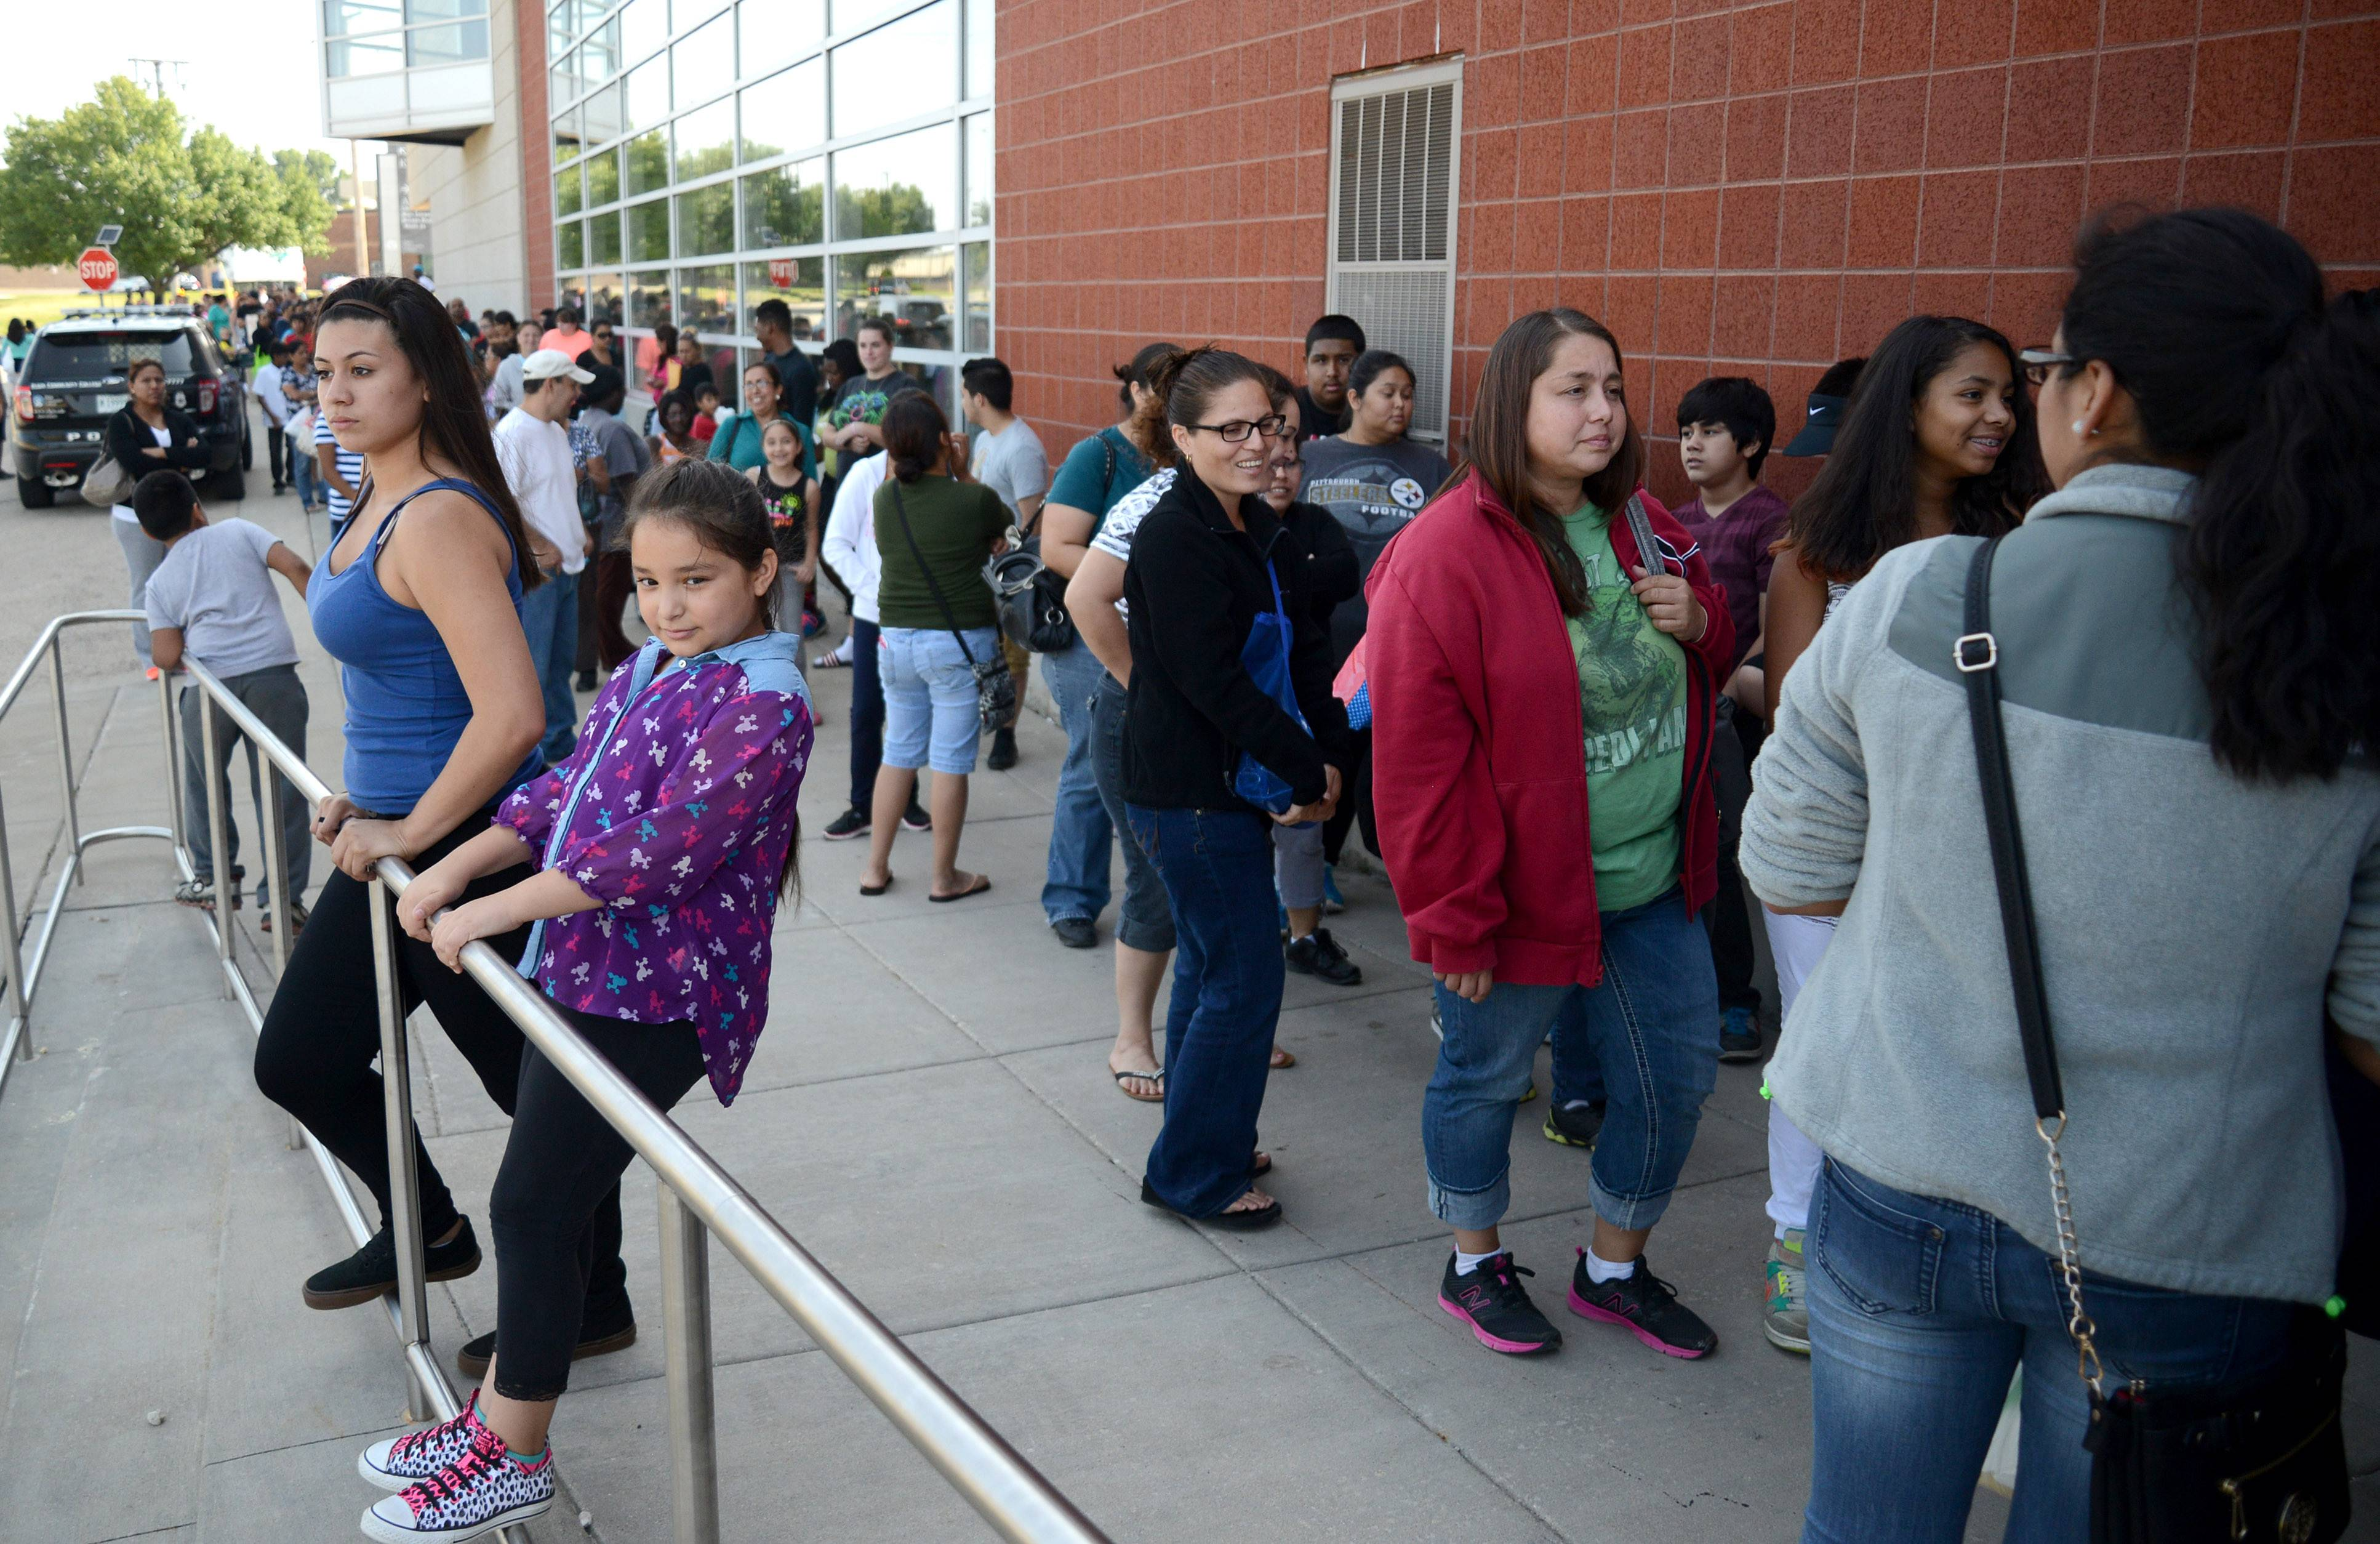 Beatriz Farias, 13, left, and Guadalupe Navarette, 9, both of Carpentersville, wait in the long line for the Project Backpack event at Elgin Community College on Saturday. The free school supplies and backpacks were distributes on a first-come, first-served basis to students enrolled in local schools.